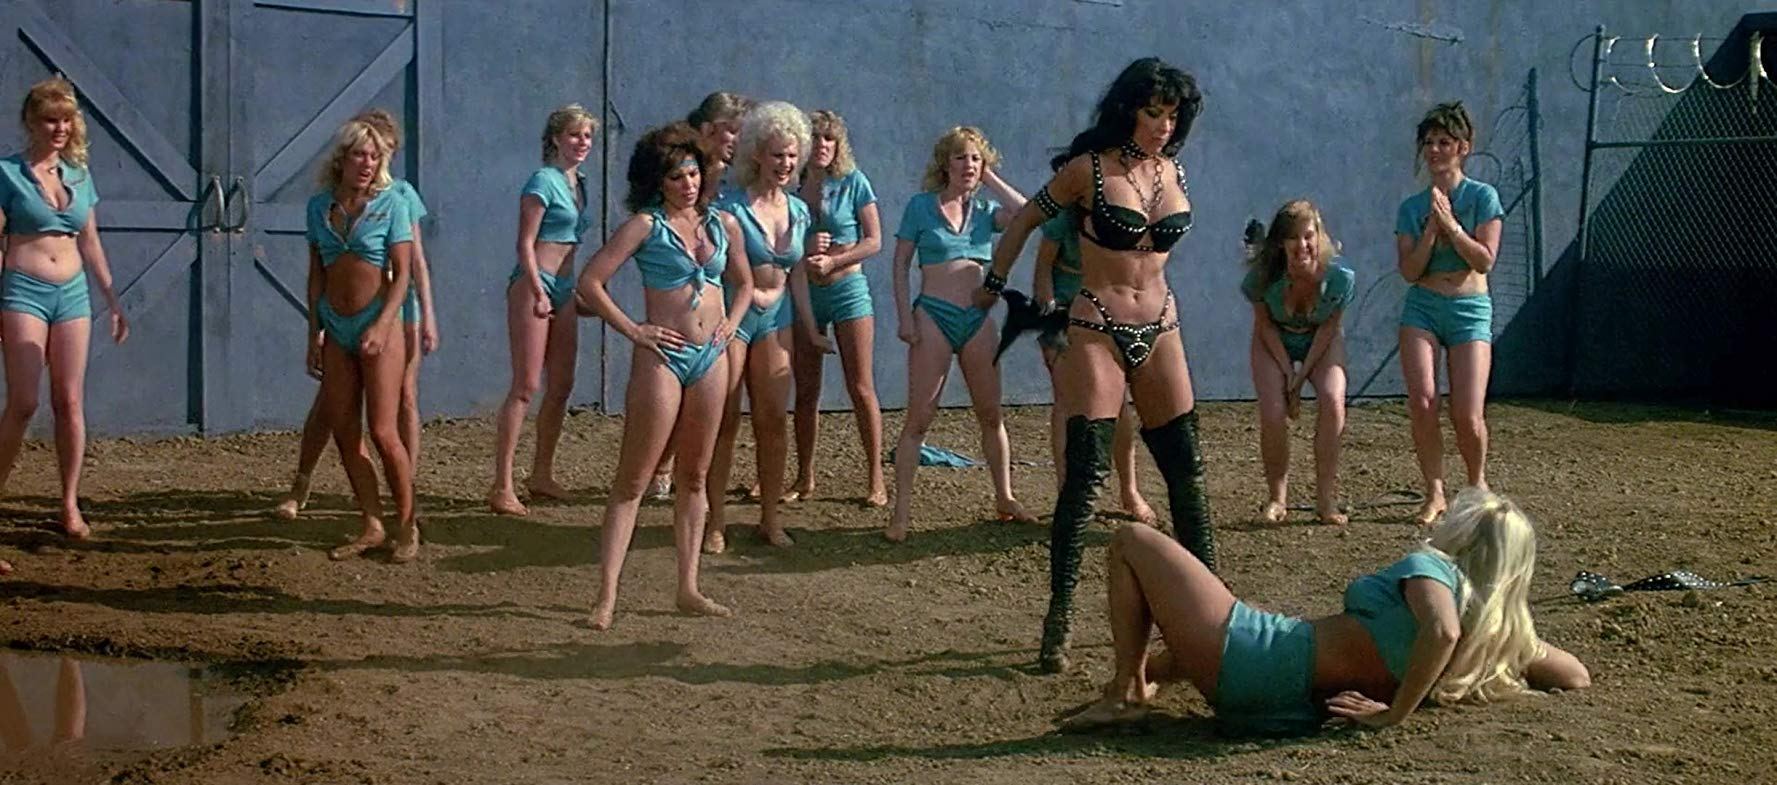 women's prison catight scene with Angelique Pettyjohn and Angela Aames in The Lost Empire (1983)